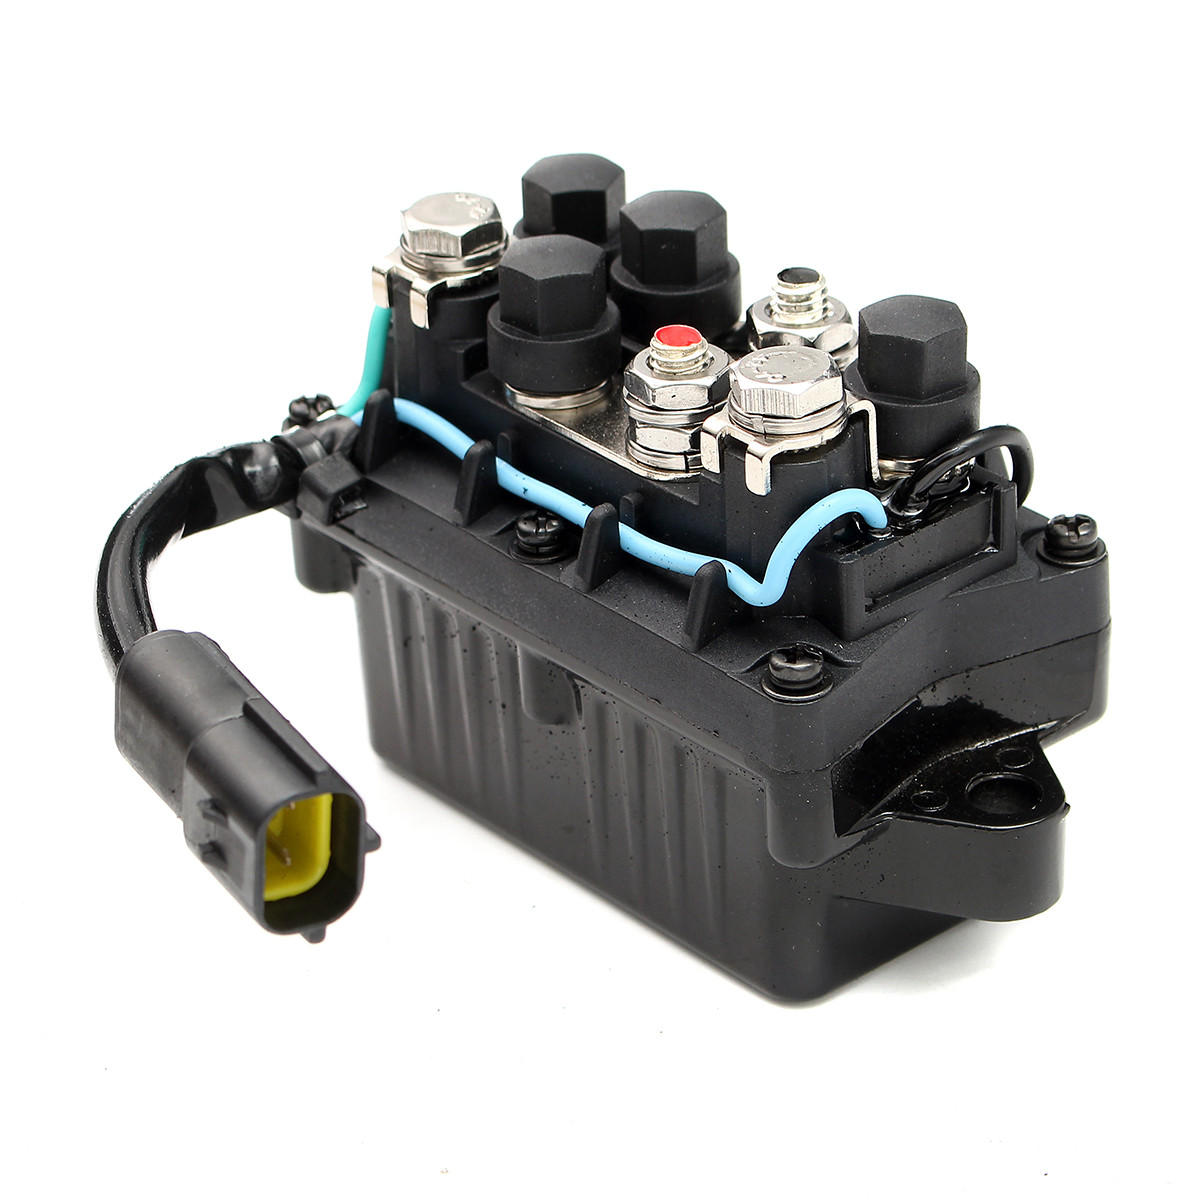 hight resolution of motor power trim relay 2 pin for yamaha outboard 4 stroke engine 40 90hp cod